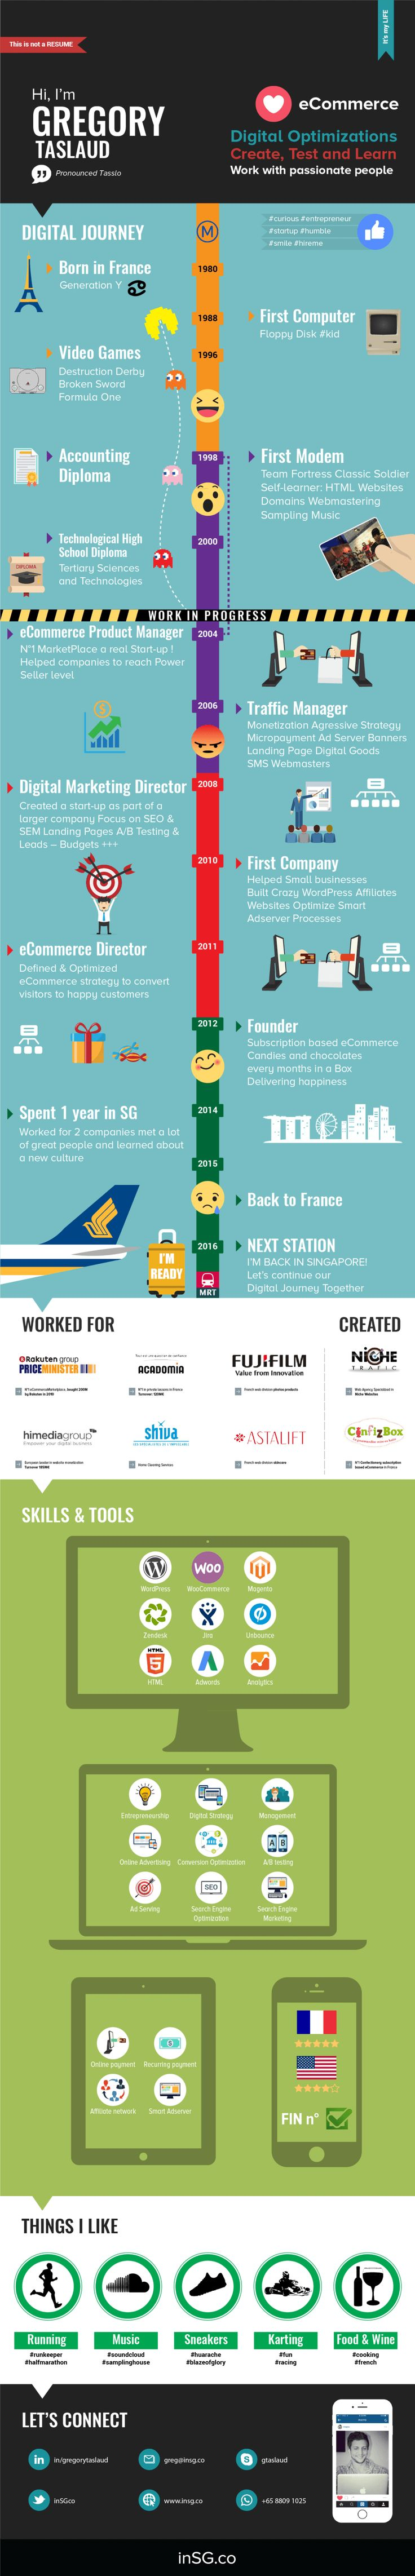 Infographic Resumes 1000 images about infographic resumes on pinterest creative infographic resume and creative resume Digital Ecommerce Infographic Singapore 2015